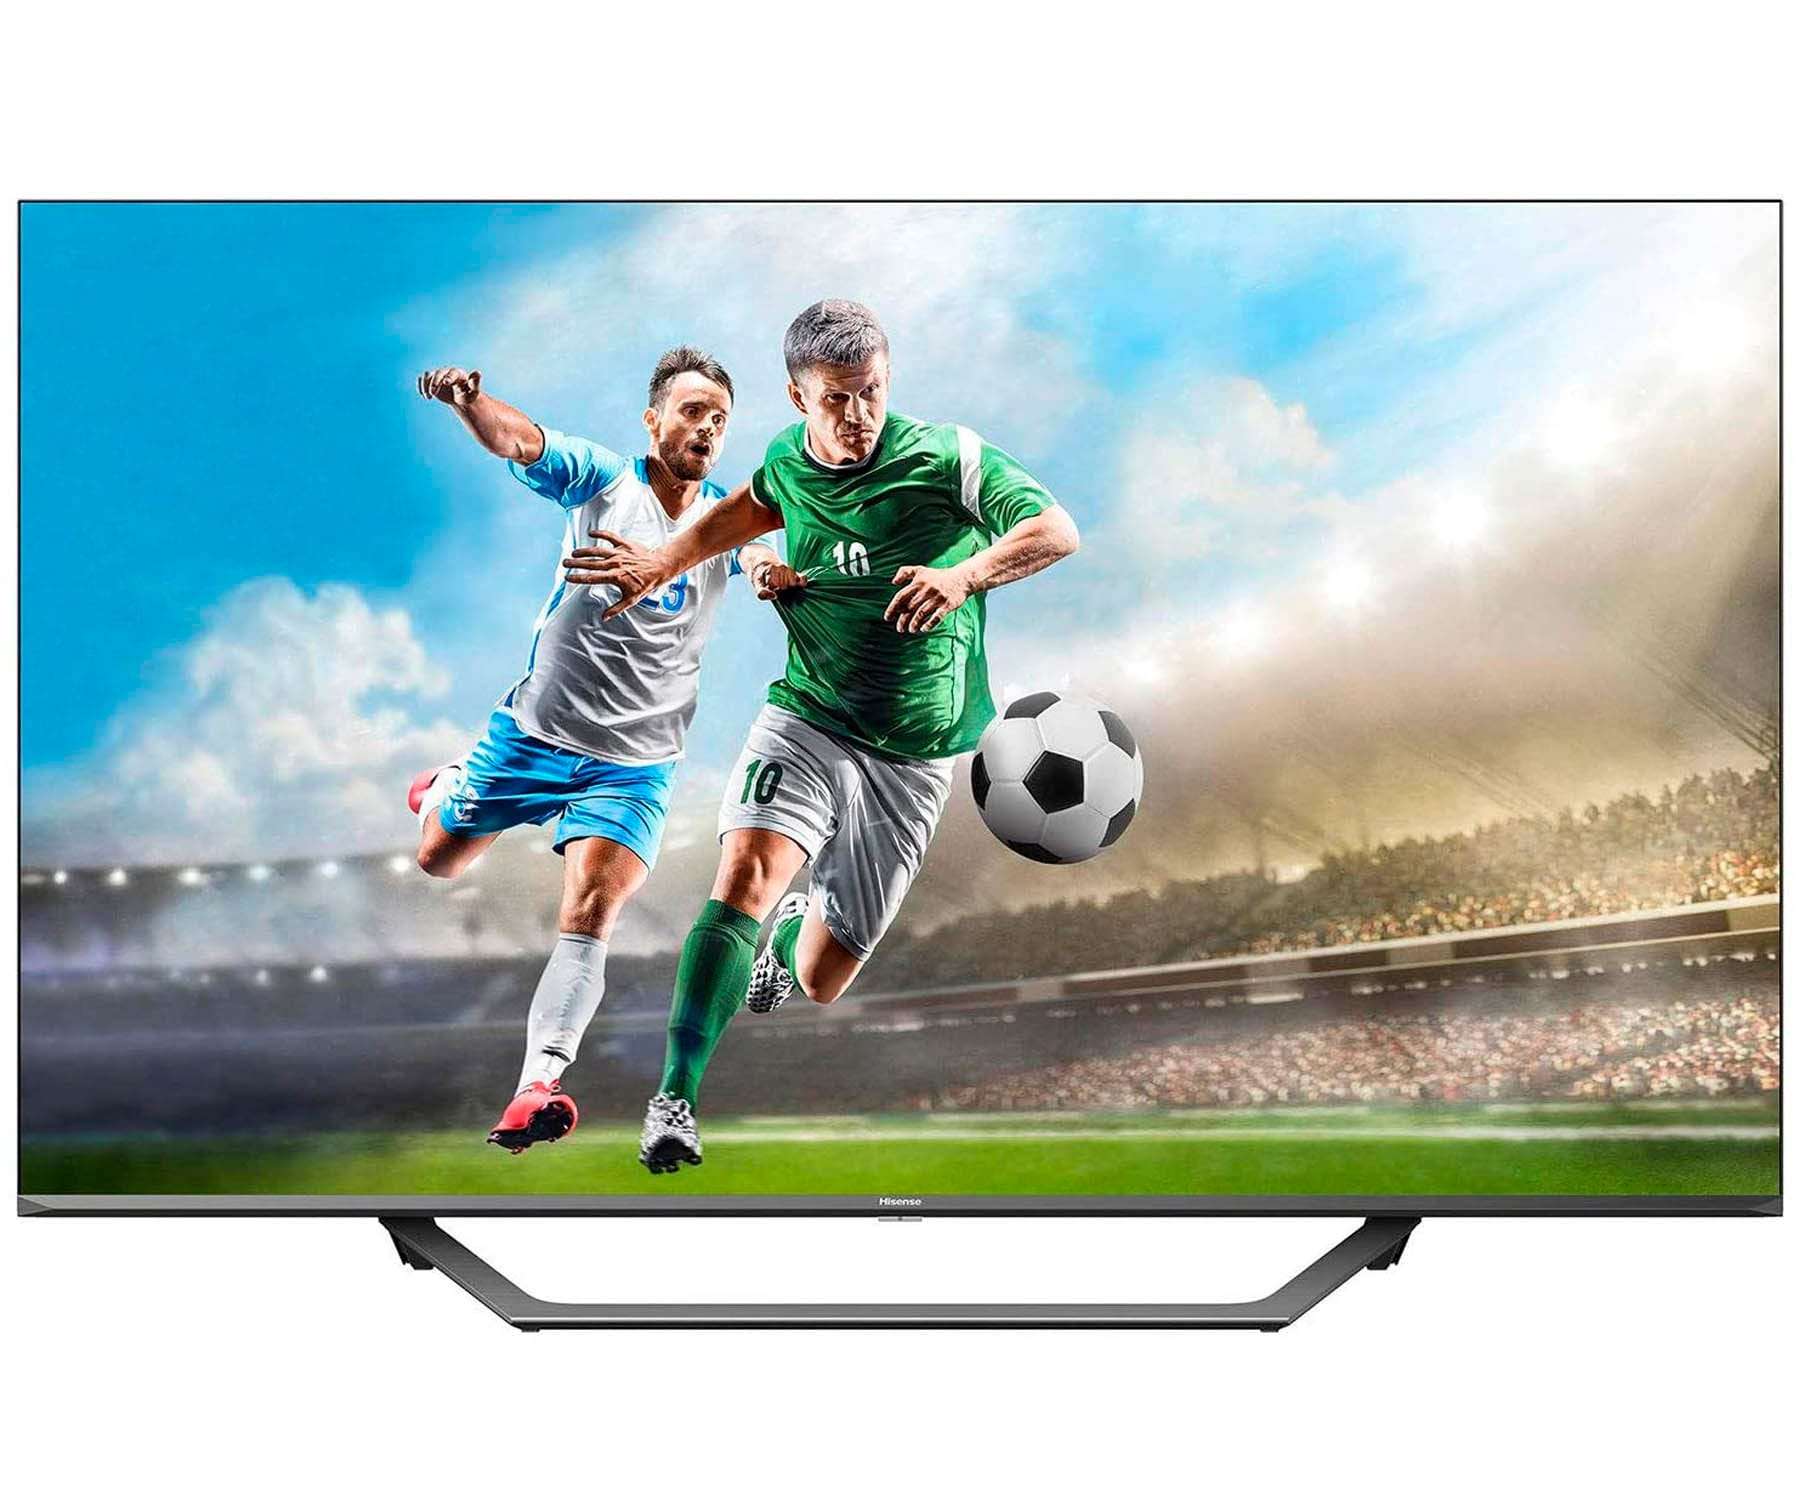 HISENSE H50A7500F TELEVISOR 50'' SMART TV LED 4K UHD HDR 2000PCI CI+ HDMI USB  BLUETOOTH